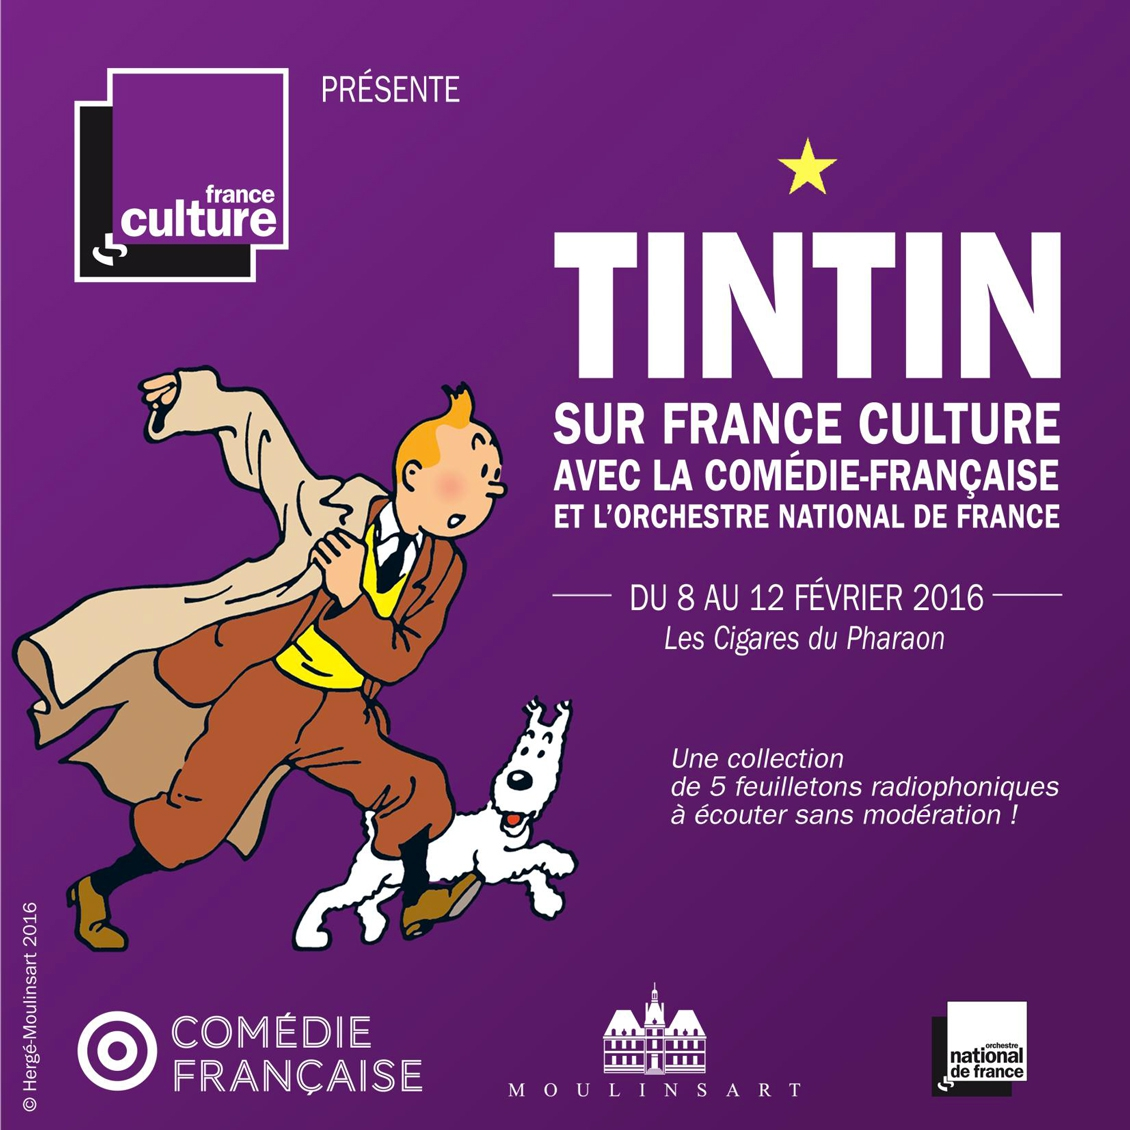 tintin-france-culture-comedie-francaise-moulinsart.jpg